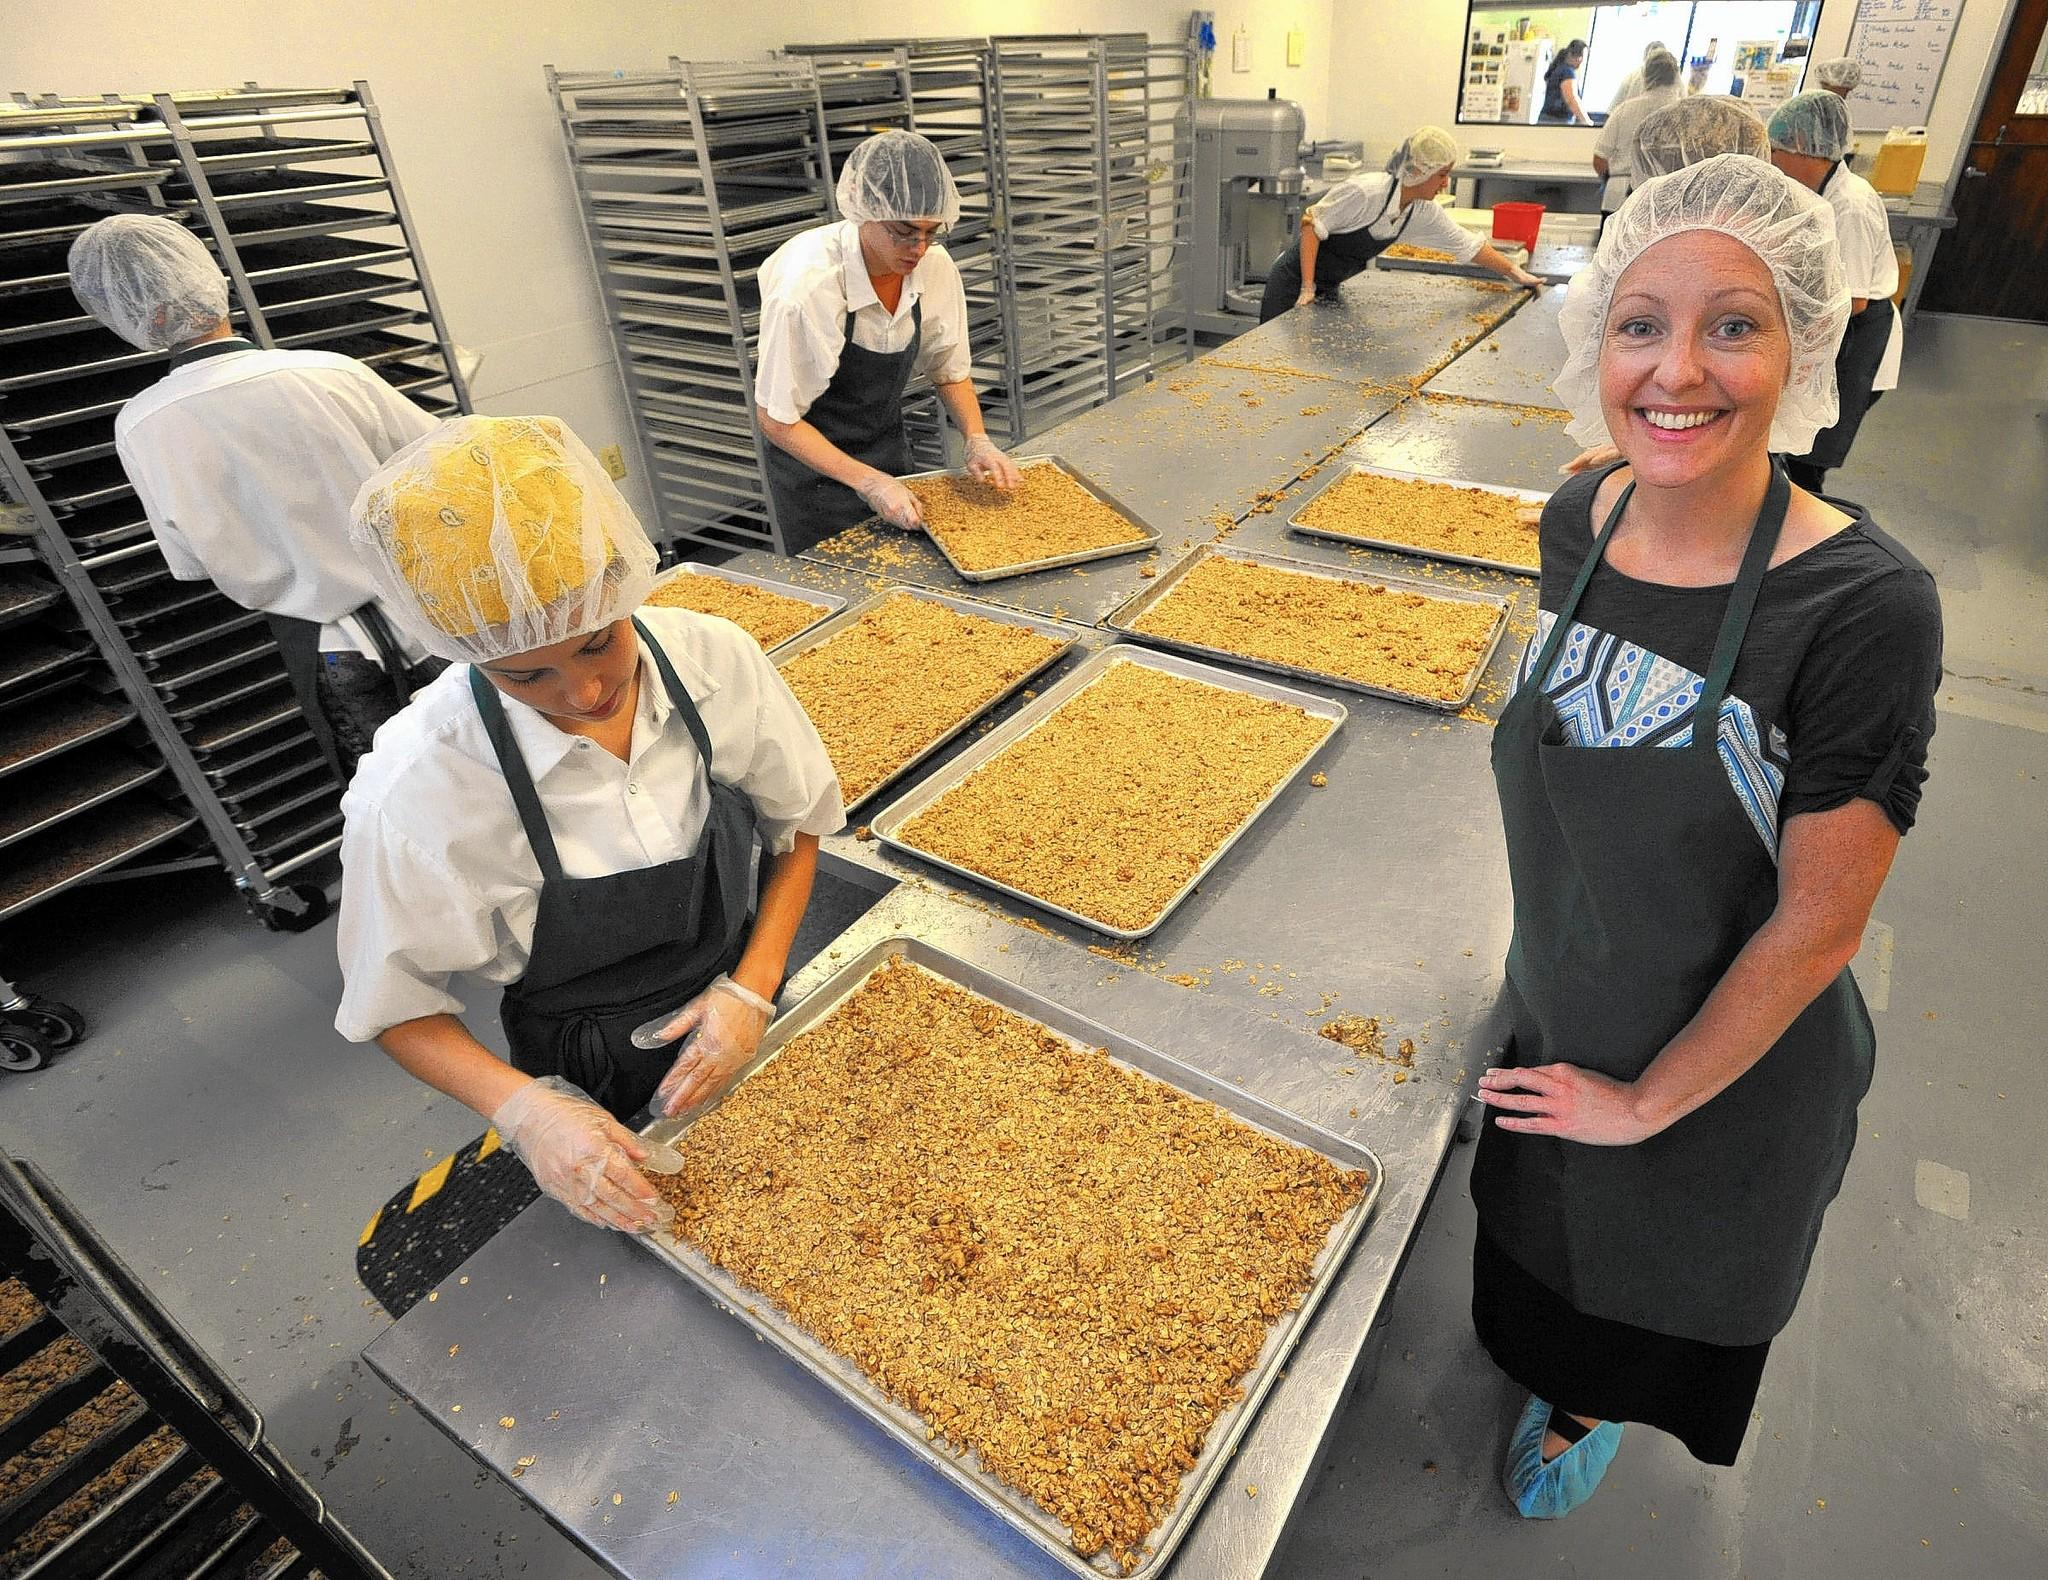 Michele Tsucalas, right, who founded Michele's Granola in 2006, has expanded to 28 employees, and will be at the Natural Products Expo East for the first time.